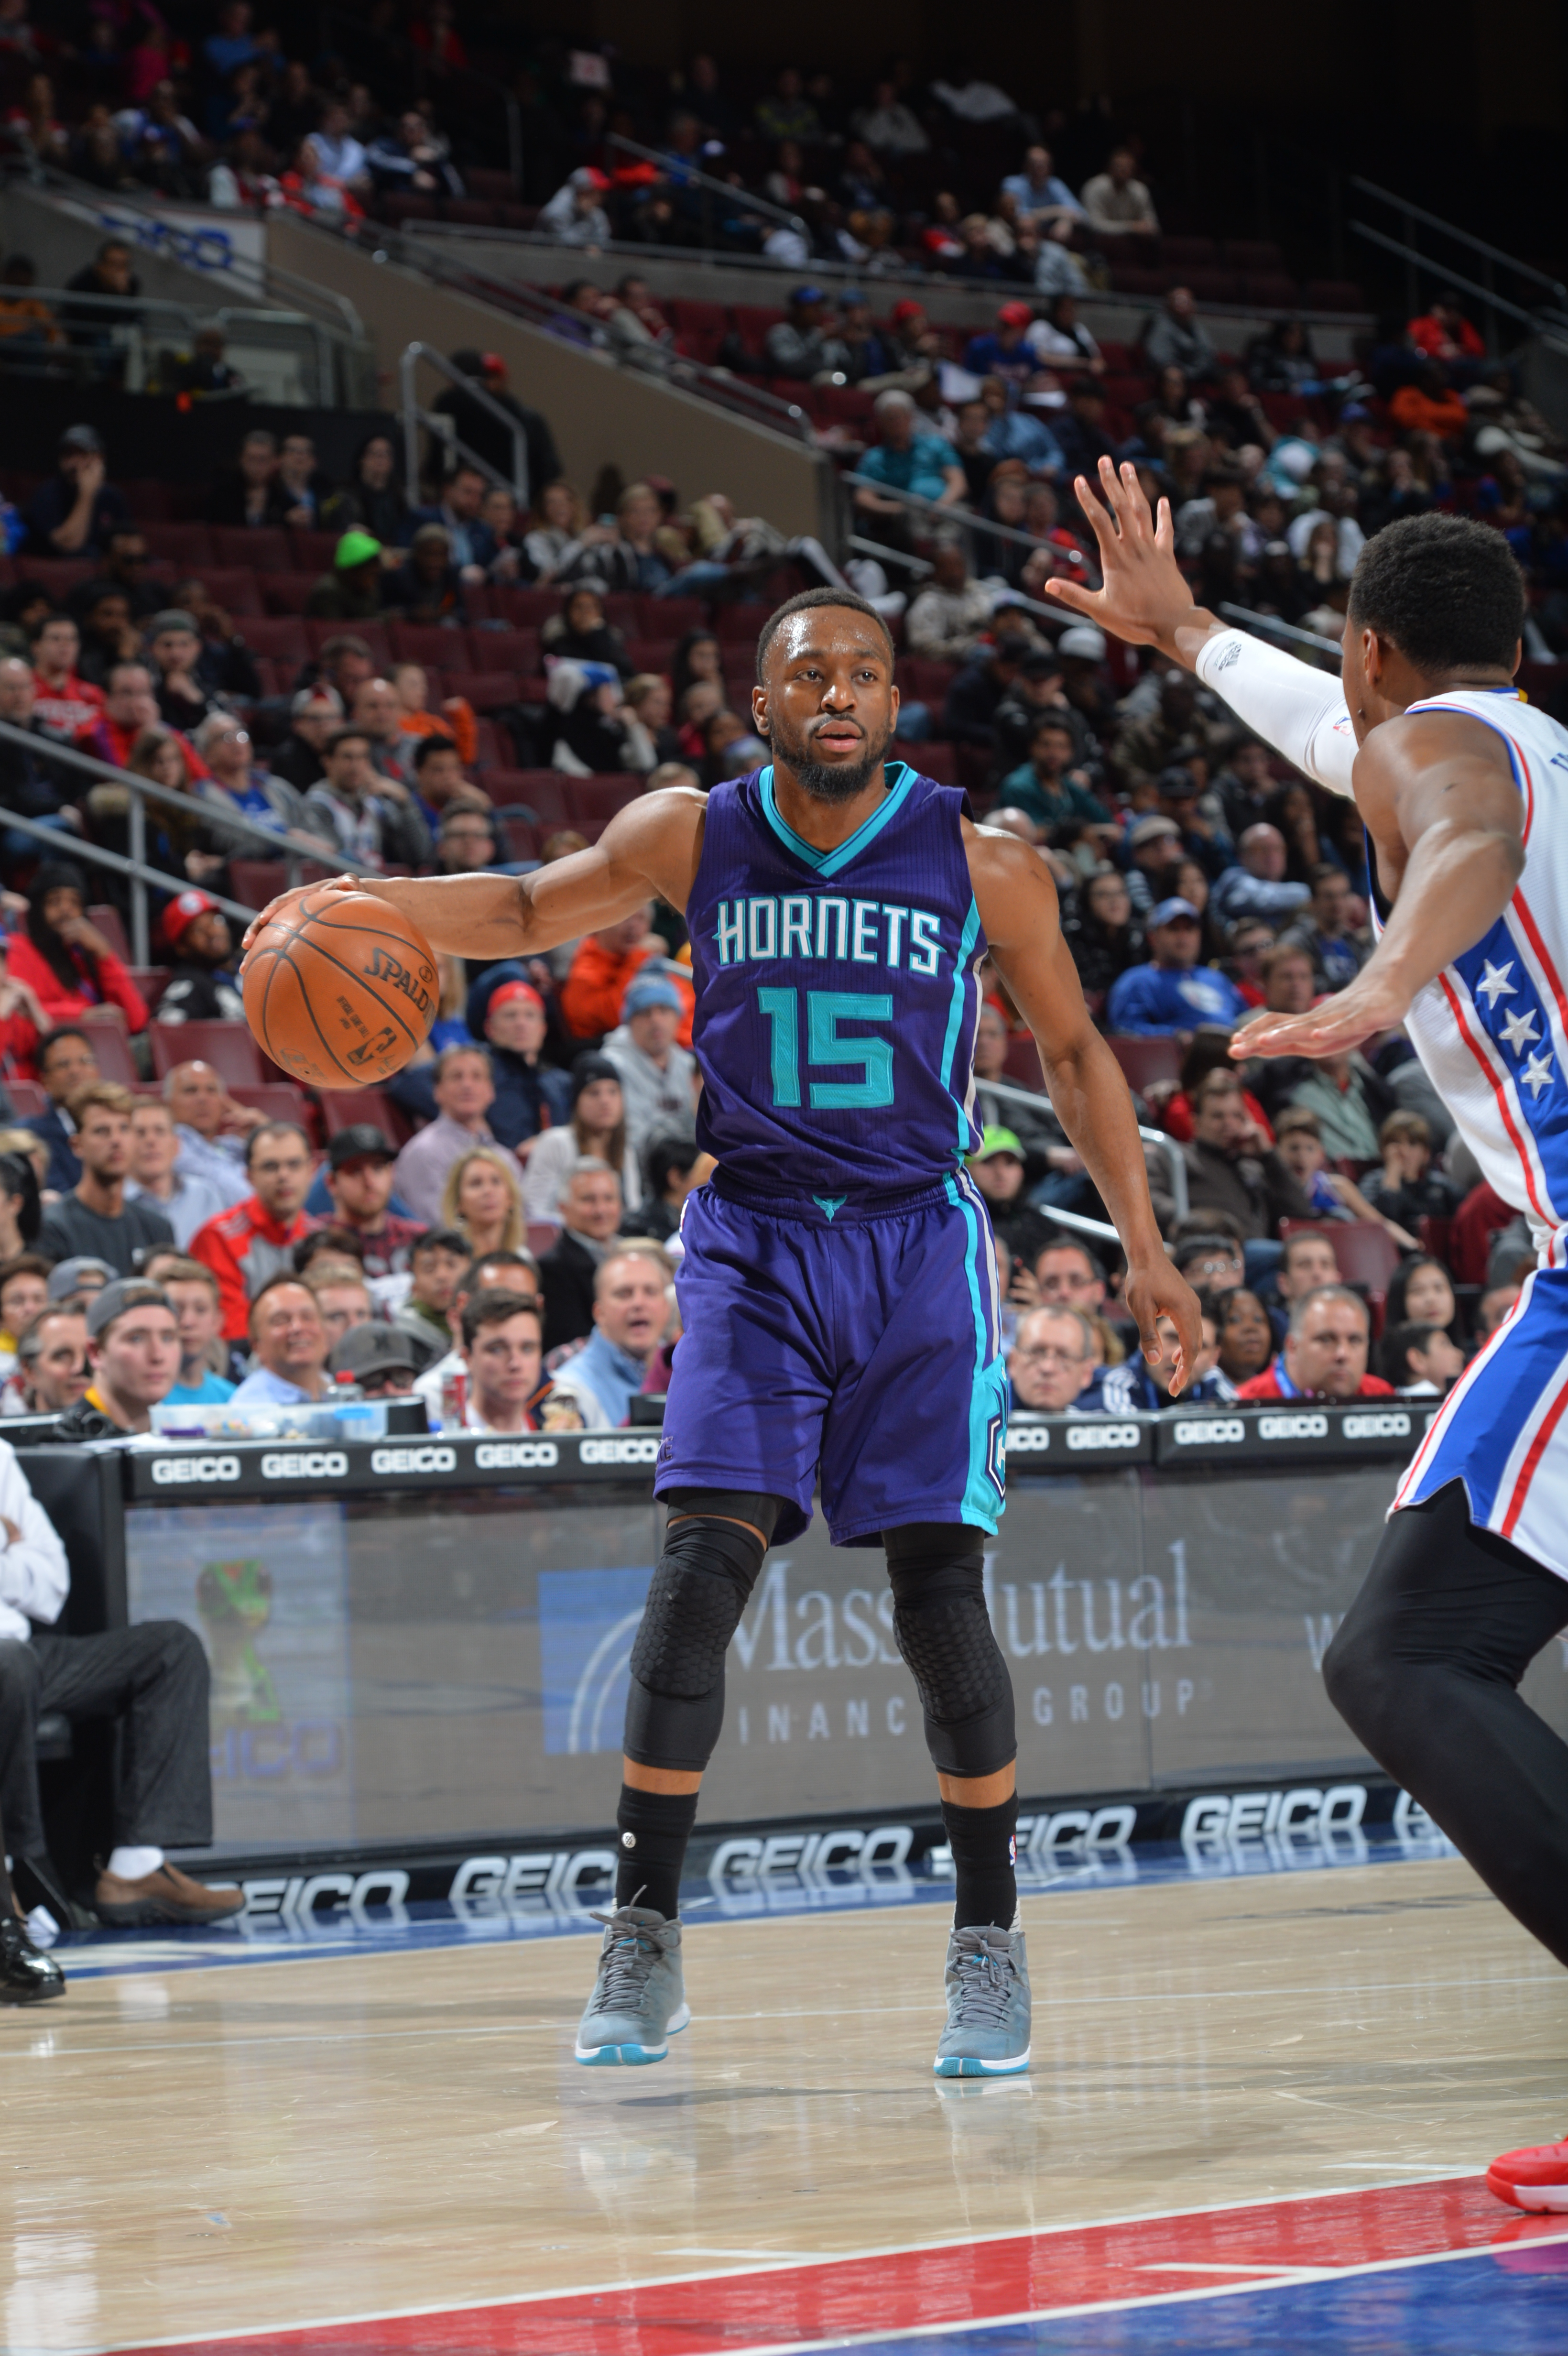 PHILADELPHIA,PA - MARCH 2:  Kemba Walker #15 of the Charlotte Hornets controls the ball against the Philadelphia 76ers at Wells Fargo Center on March 2, 2016 in Philadelphia, Pennsylvania (Photo by Jesse D. Garrabrant/NBAE via Getty Images)